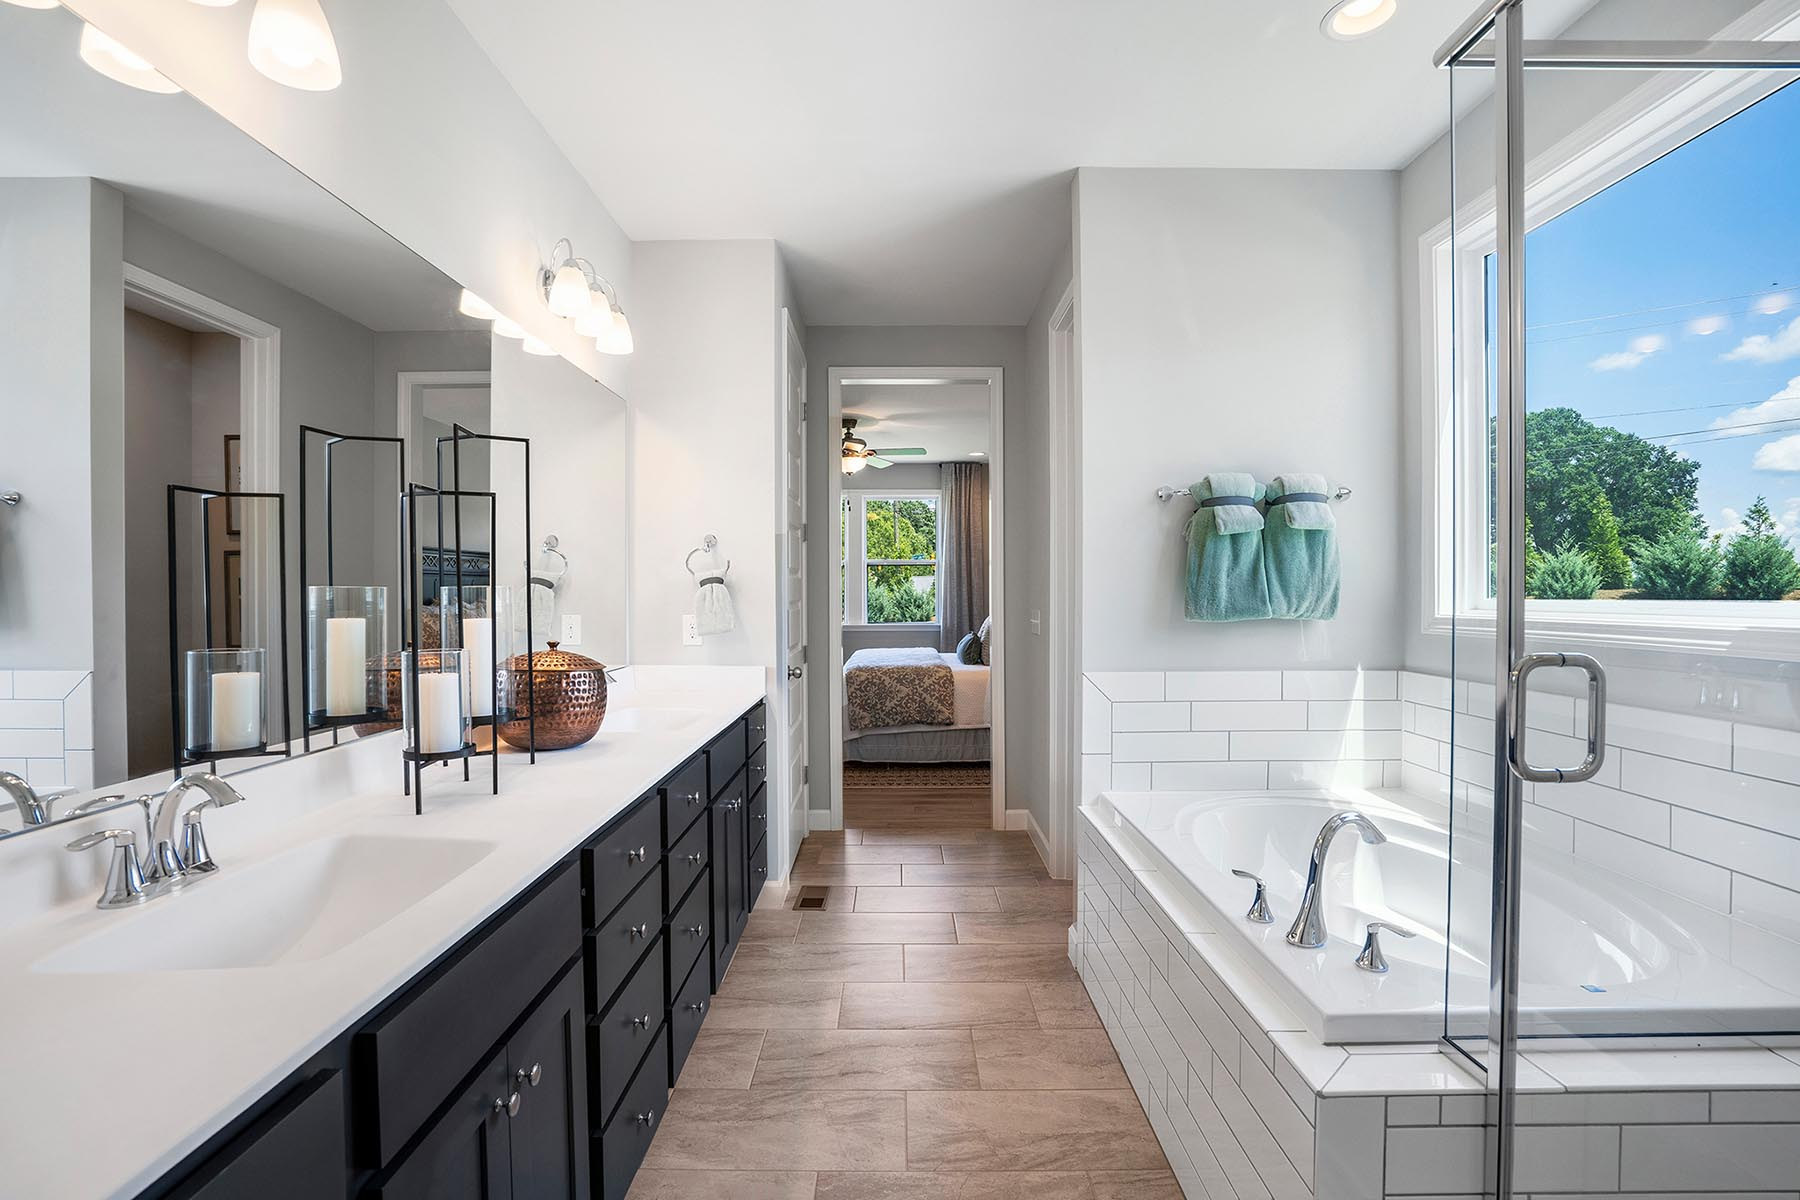 Larkin Plan Bathroom_Master Bath at Portofino in Clayton North Carolina by Mattamy Homes